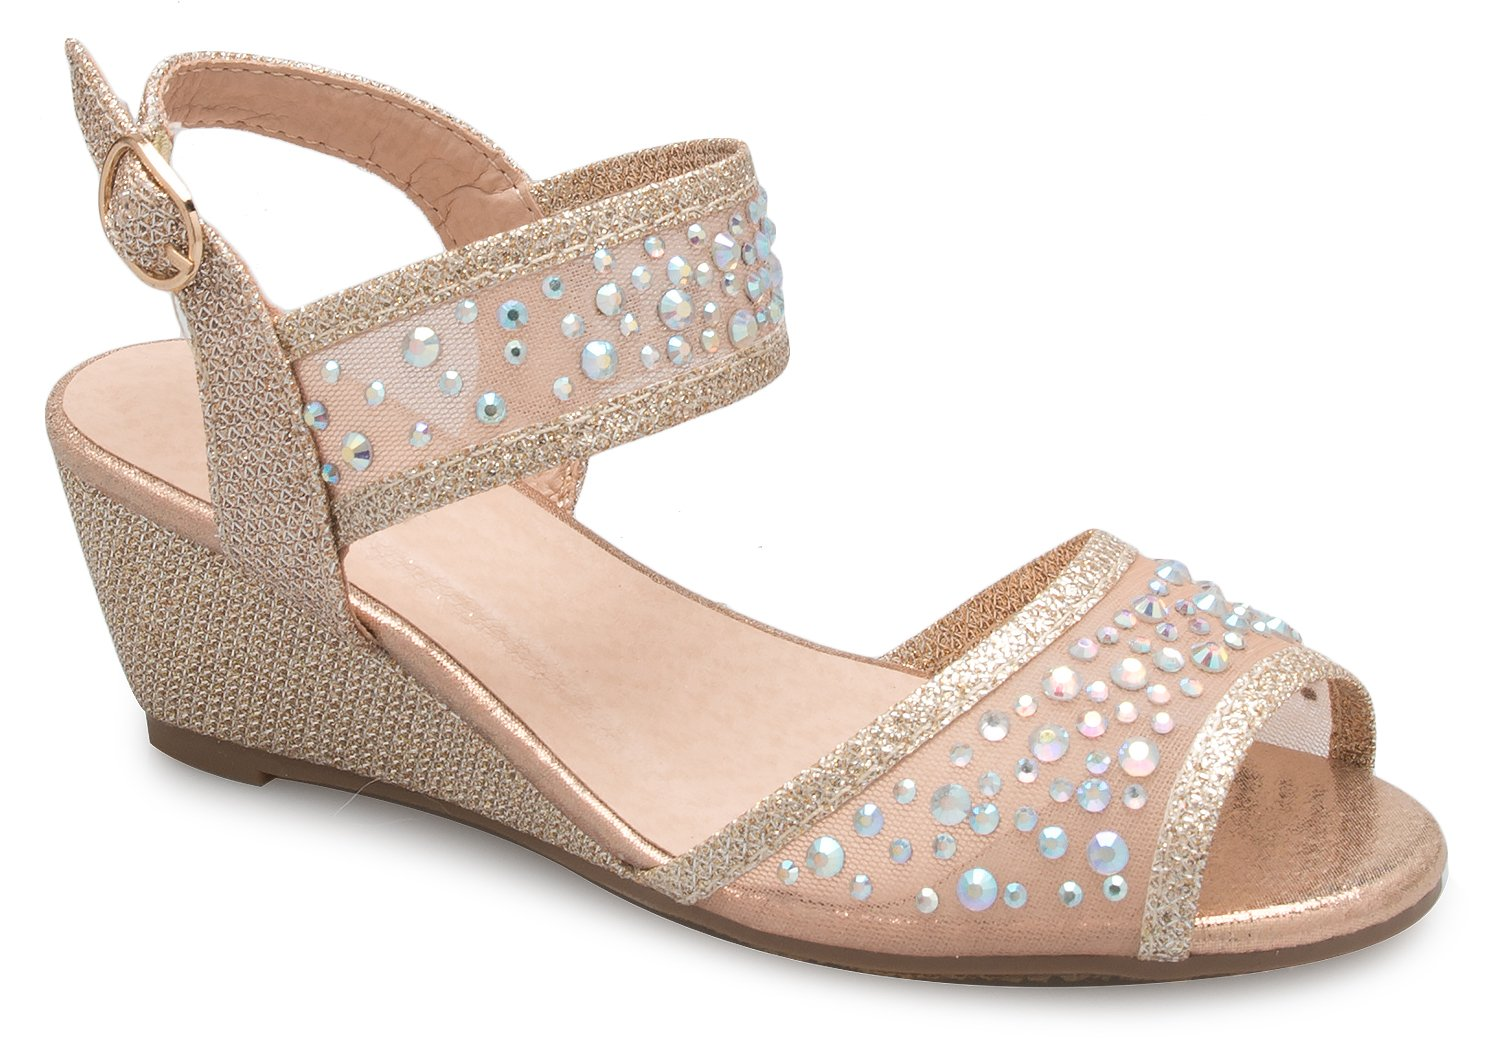 OLIVIA K Girl's Peep Toe Rhinestone Ankle Strap with Adjustable Buckle Wedge Sandals - Adorable, Comfort, Casual by OLIVIA K (Image #1)